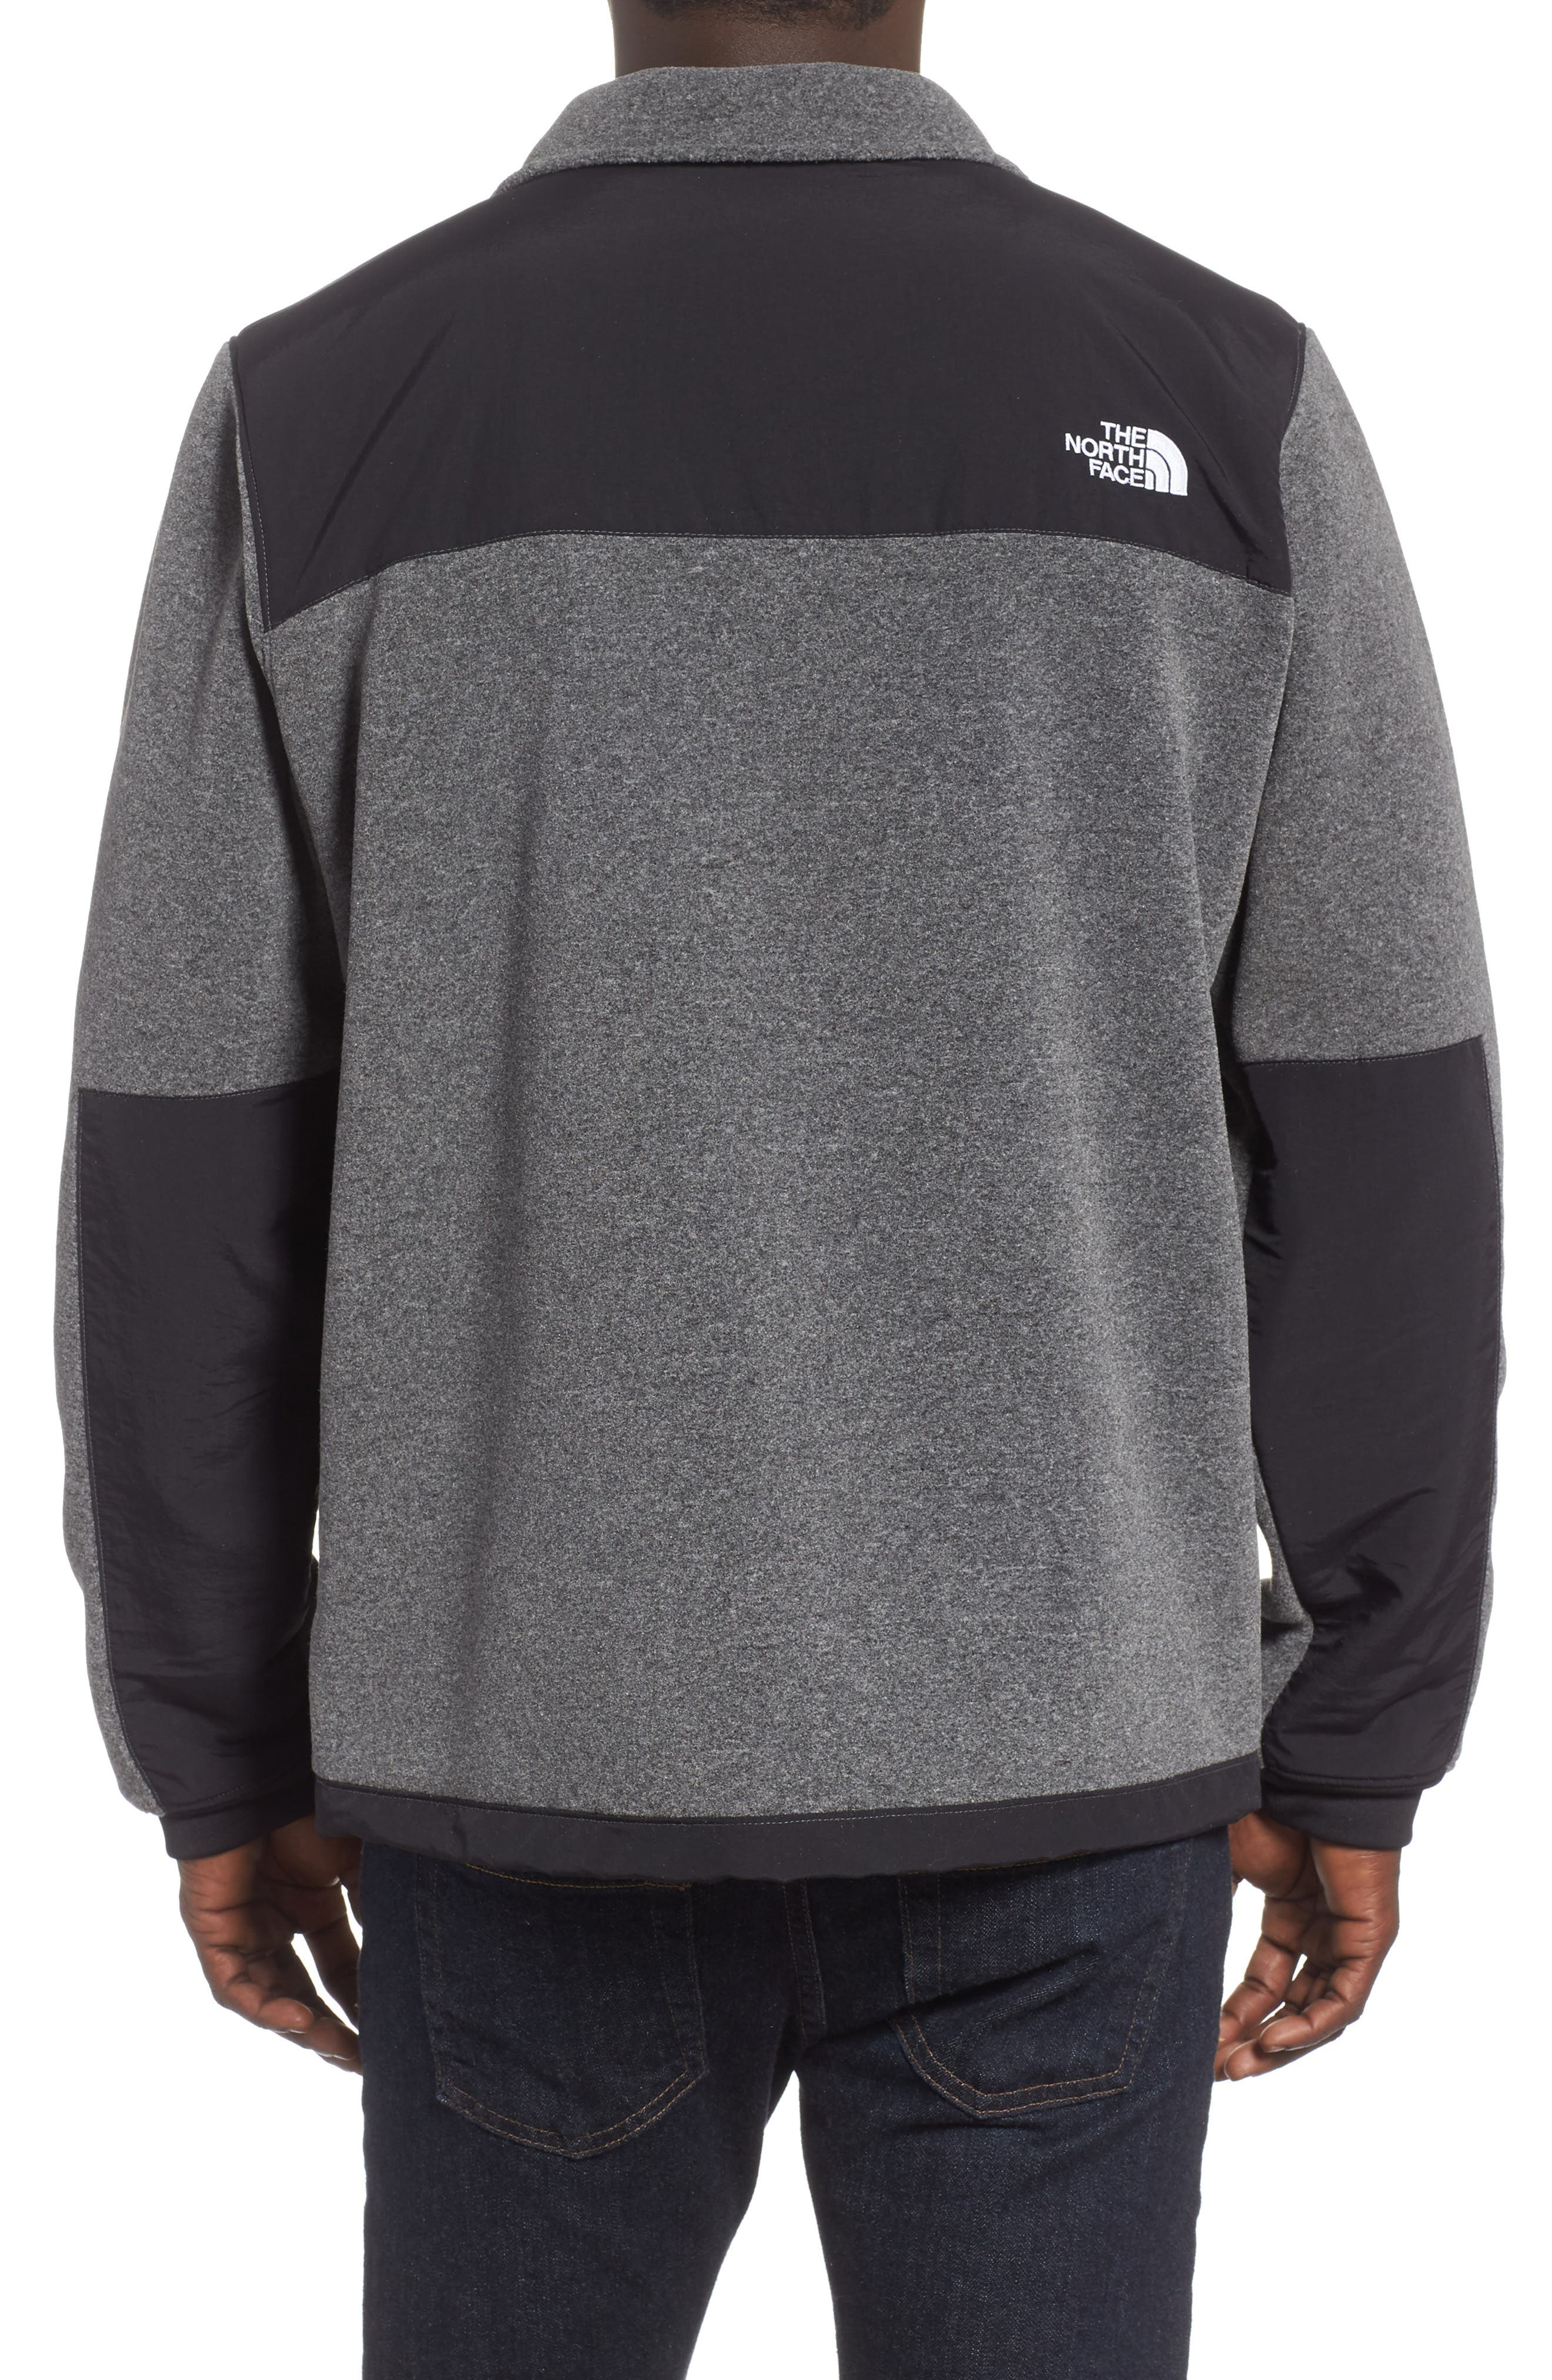 THE NORTH FACE,                             Denali 2 Jacket,                             Alternate thumbnail 2, color,                             RECYCLED CHARCOAL GREY HEATHER